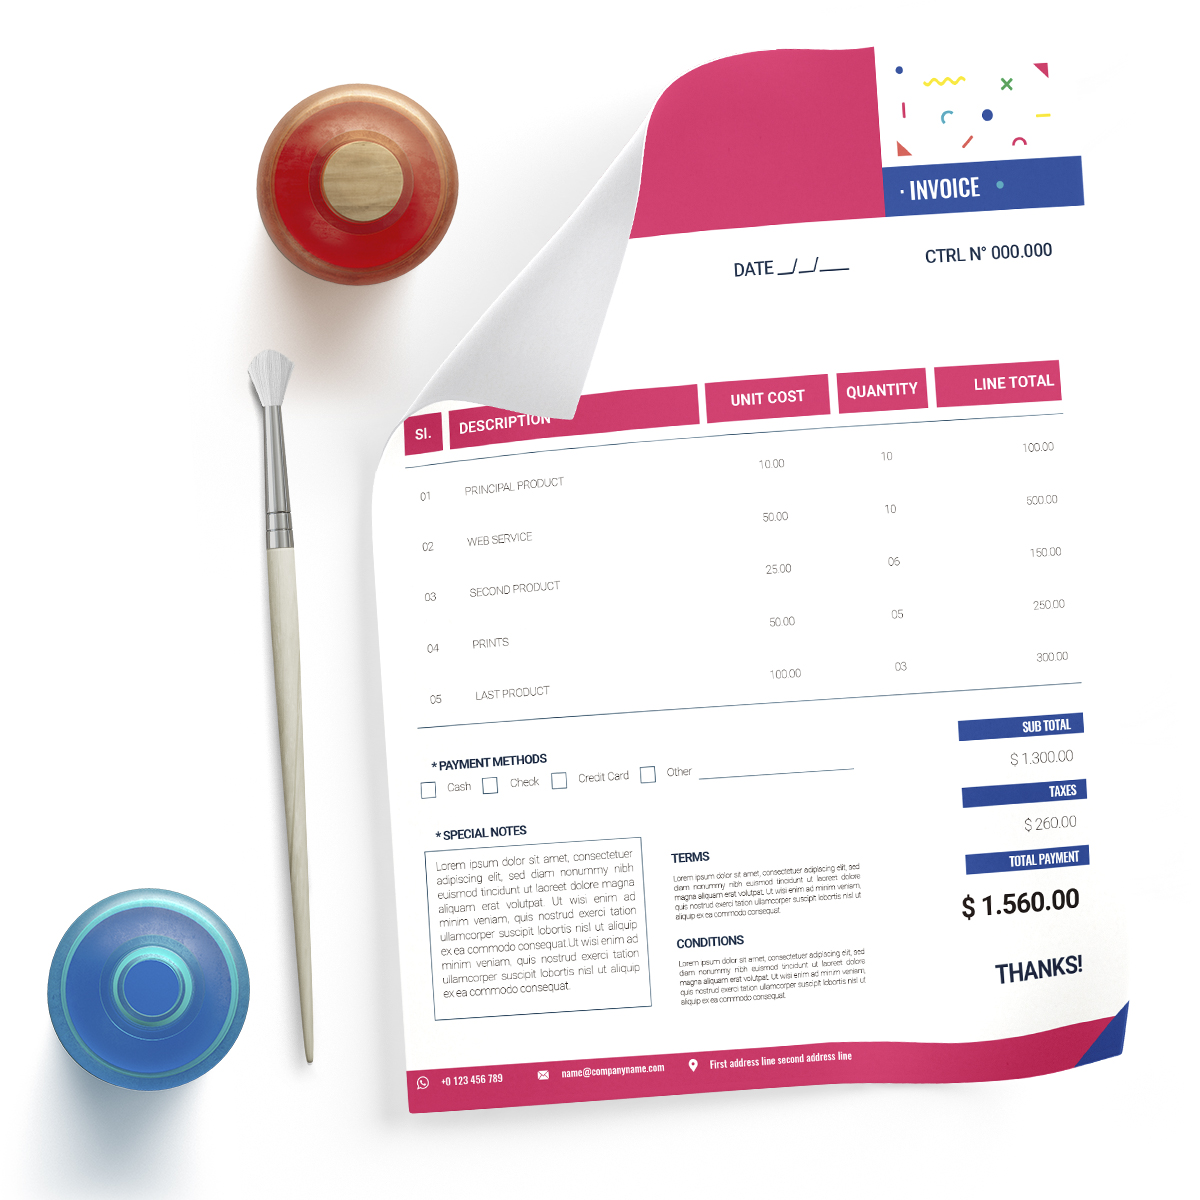 candy_store_invoice_02